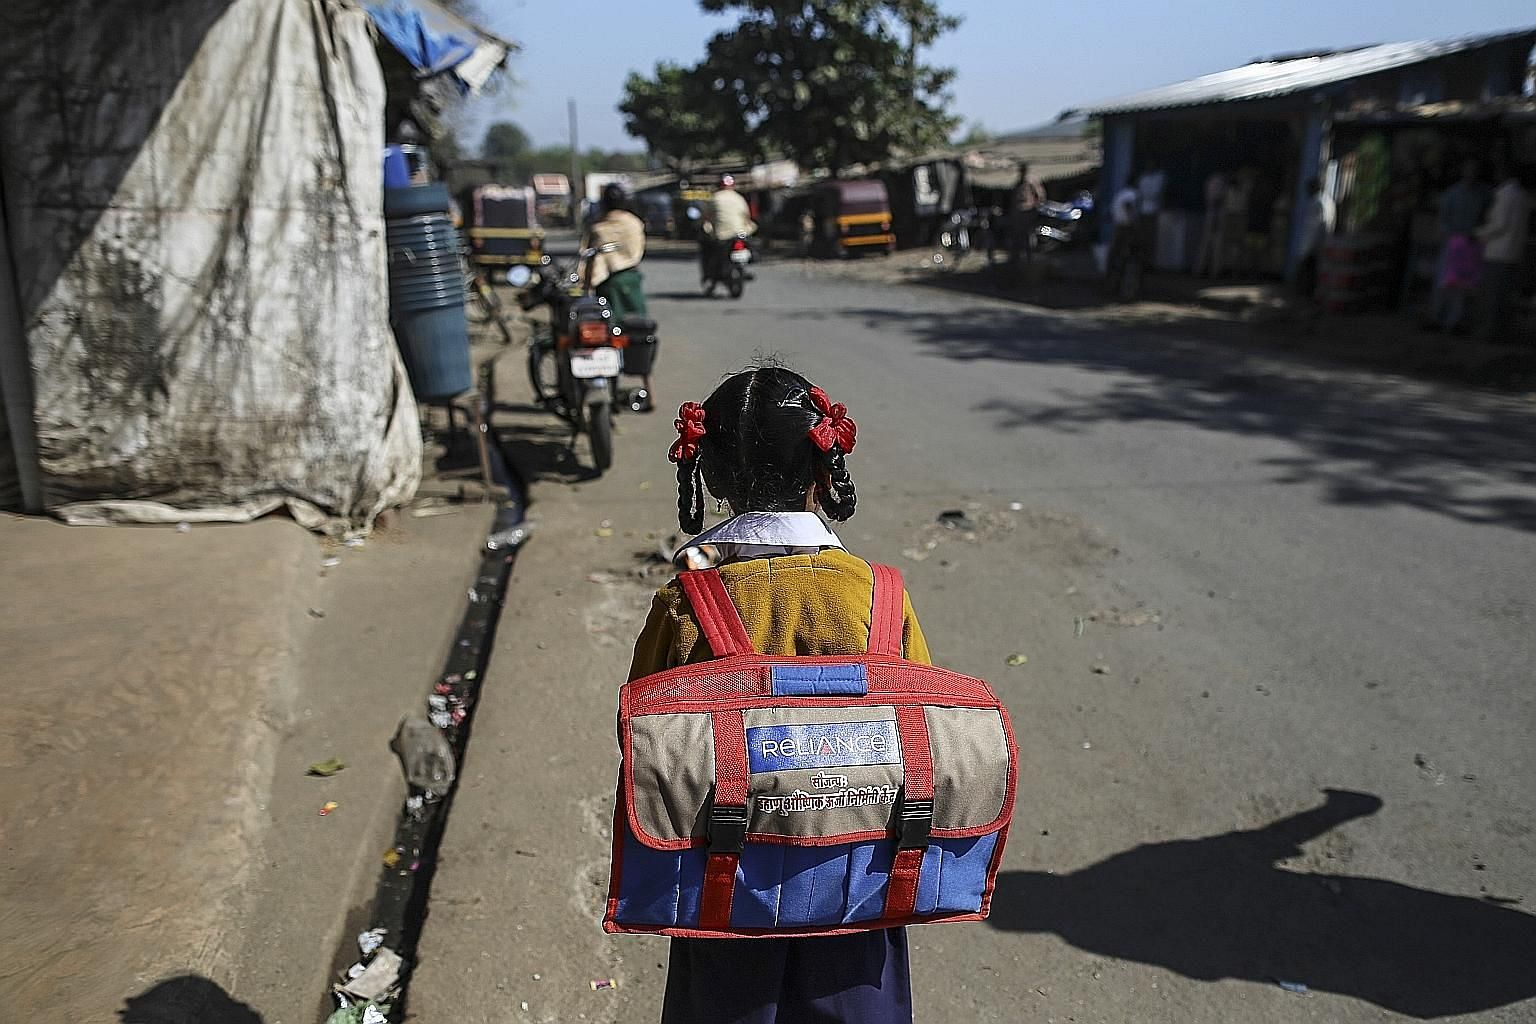 India has achieved universal primary education and is predicted by the UN to be the only country in South and West Asia to have an equal ratio of girls to boys in primary schools. But not enough is being done to stop girls from dropping out at the se